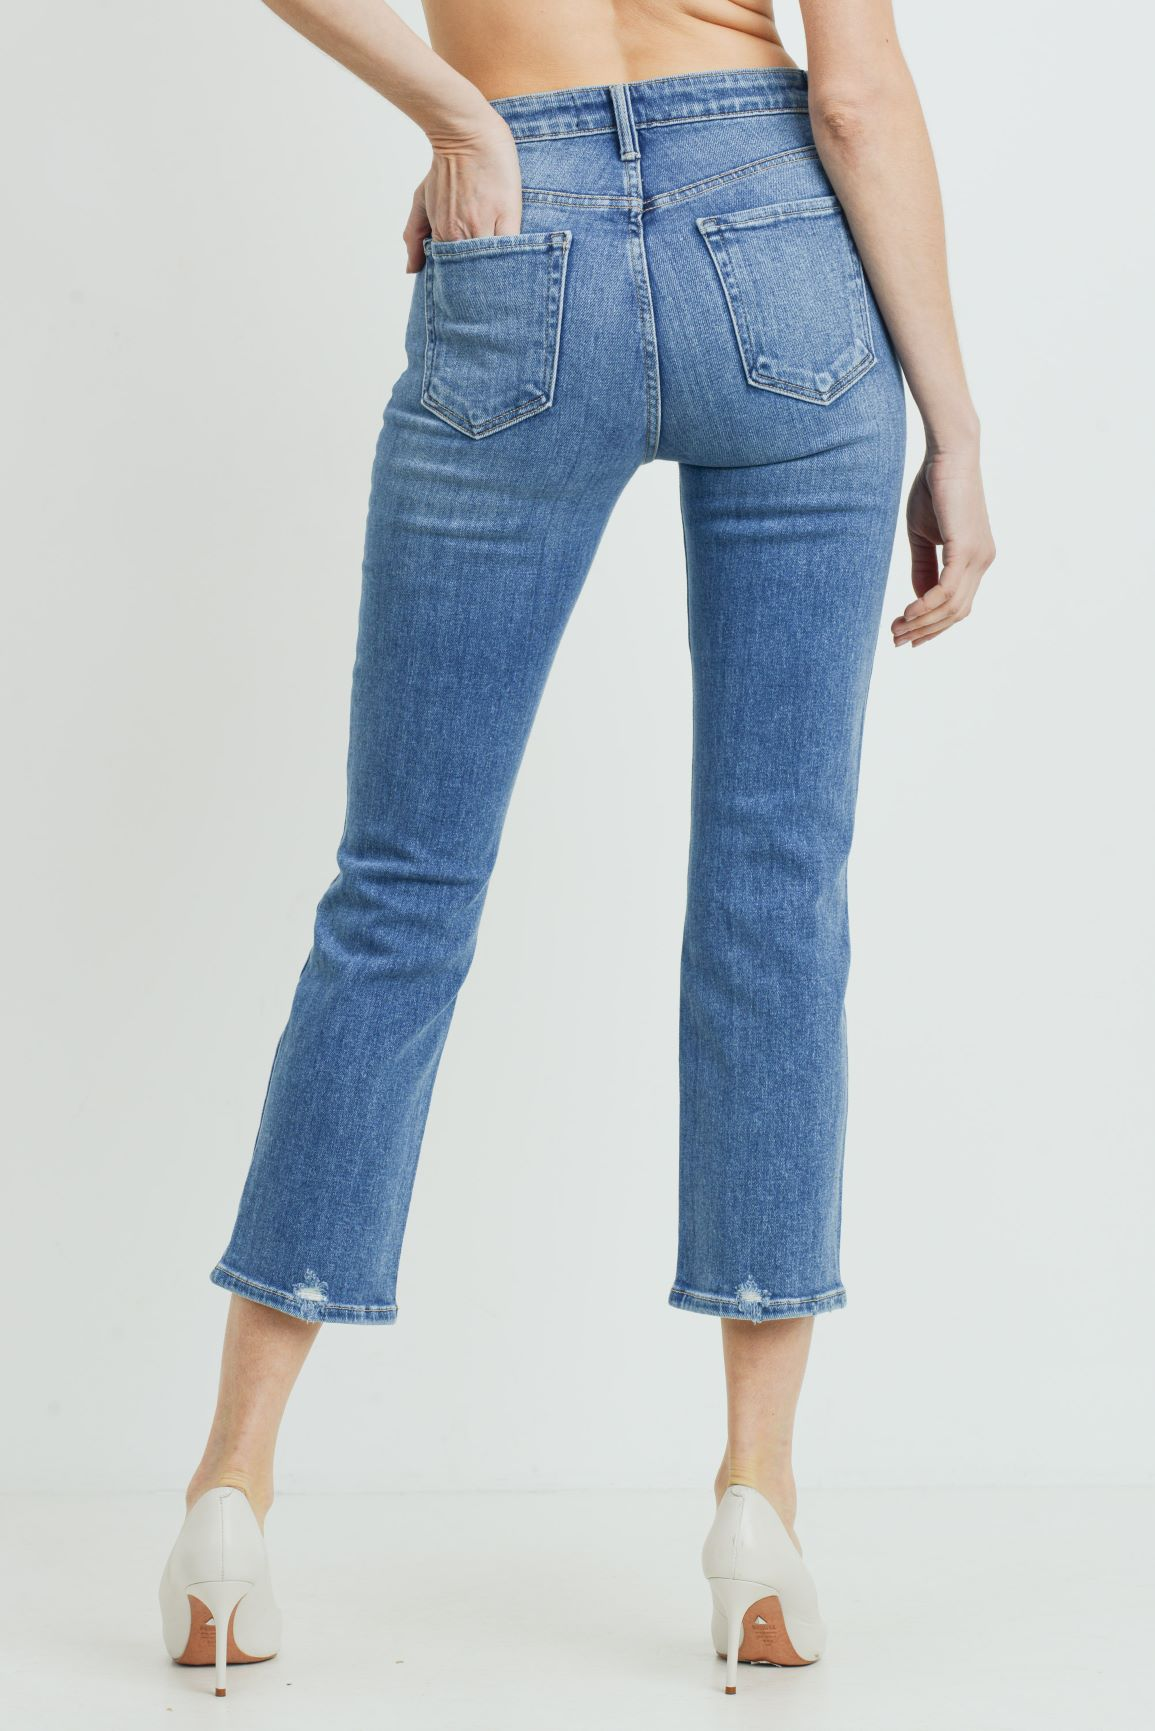 Just Black - Hi-Rise Distressed Straight Leg Jeans